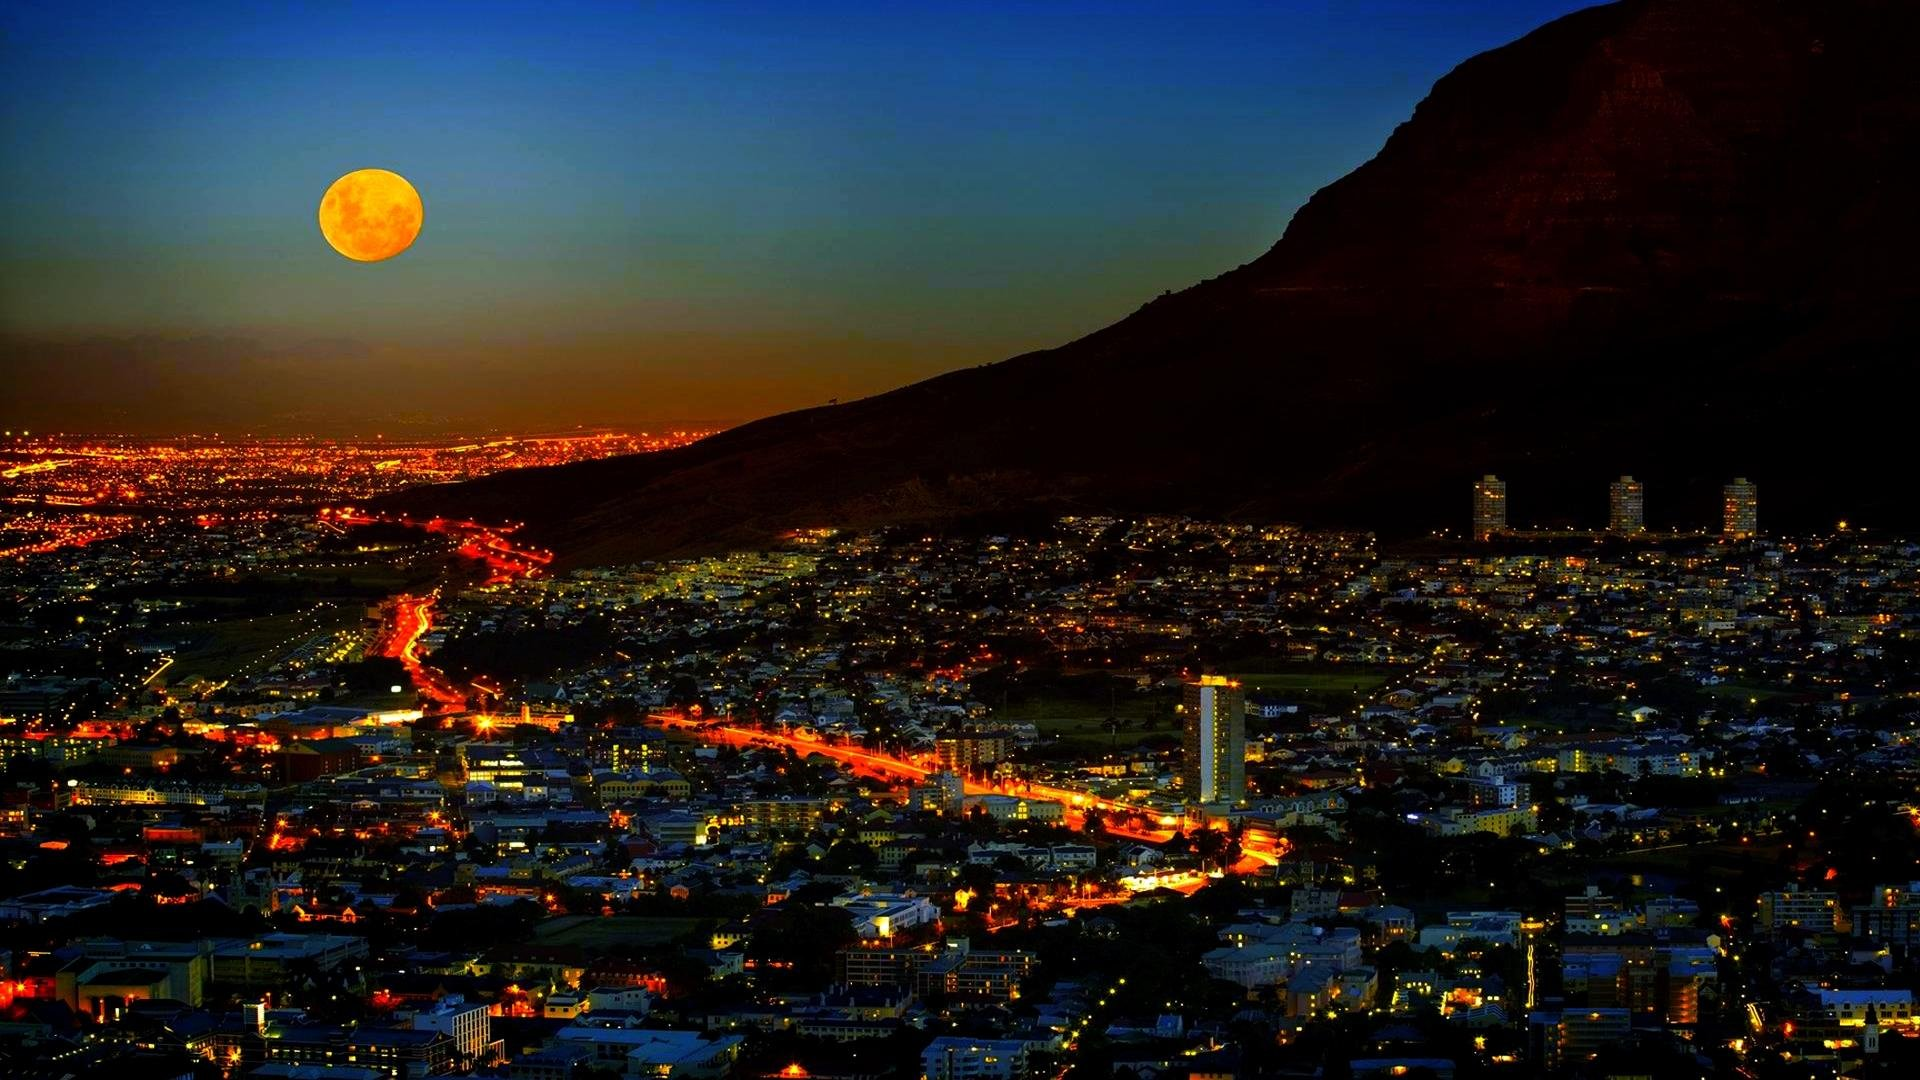 Moonlighted City Cape Town Lights South Africa 17351 Hd